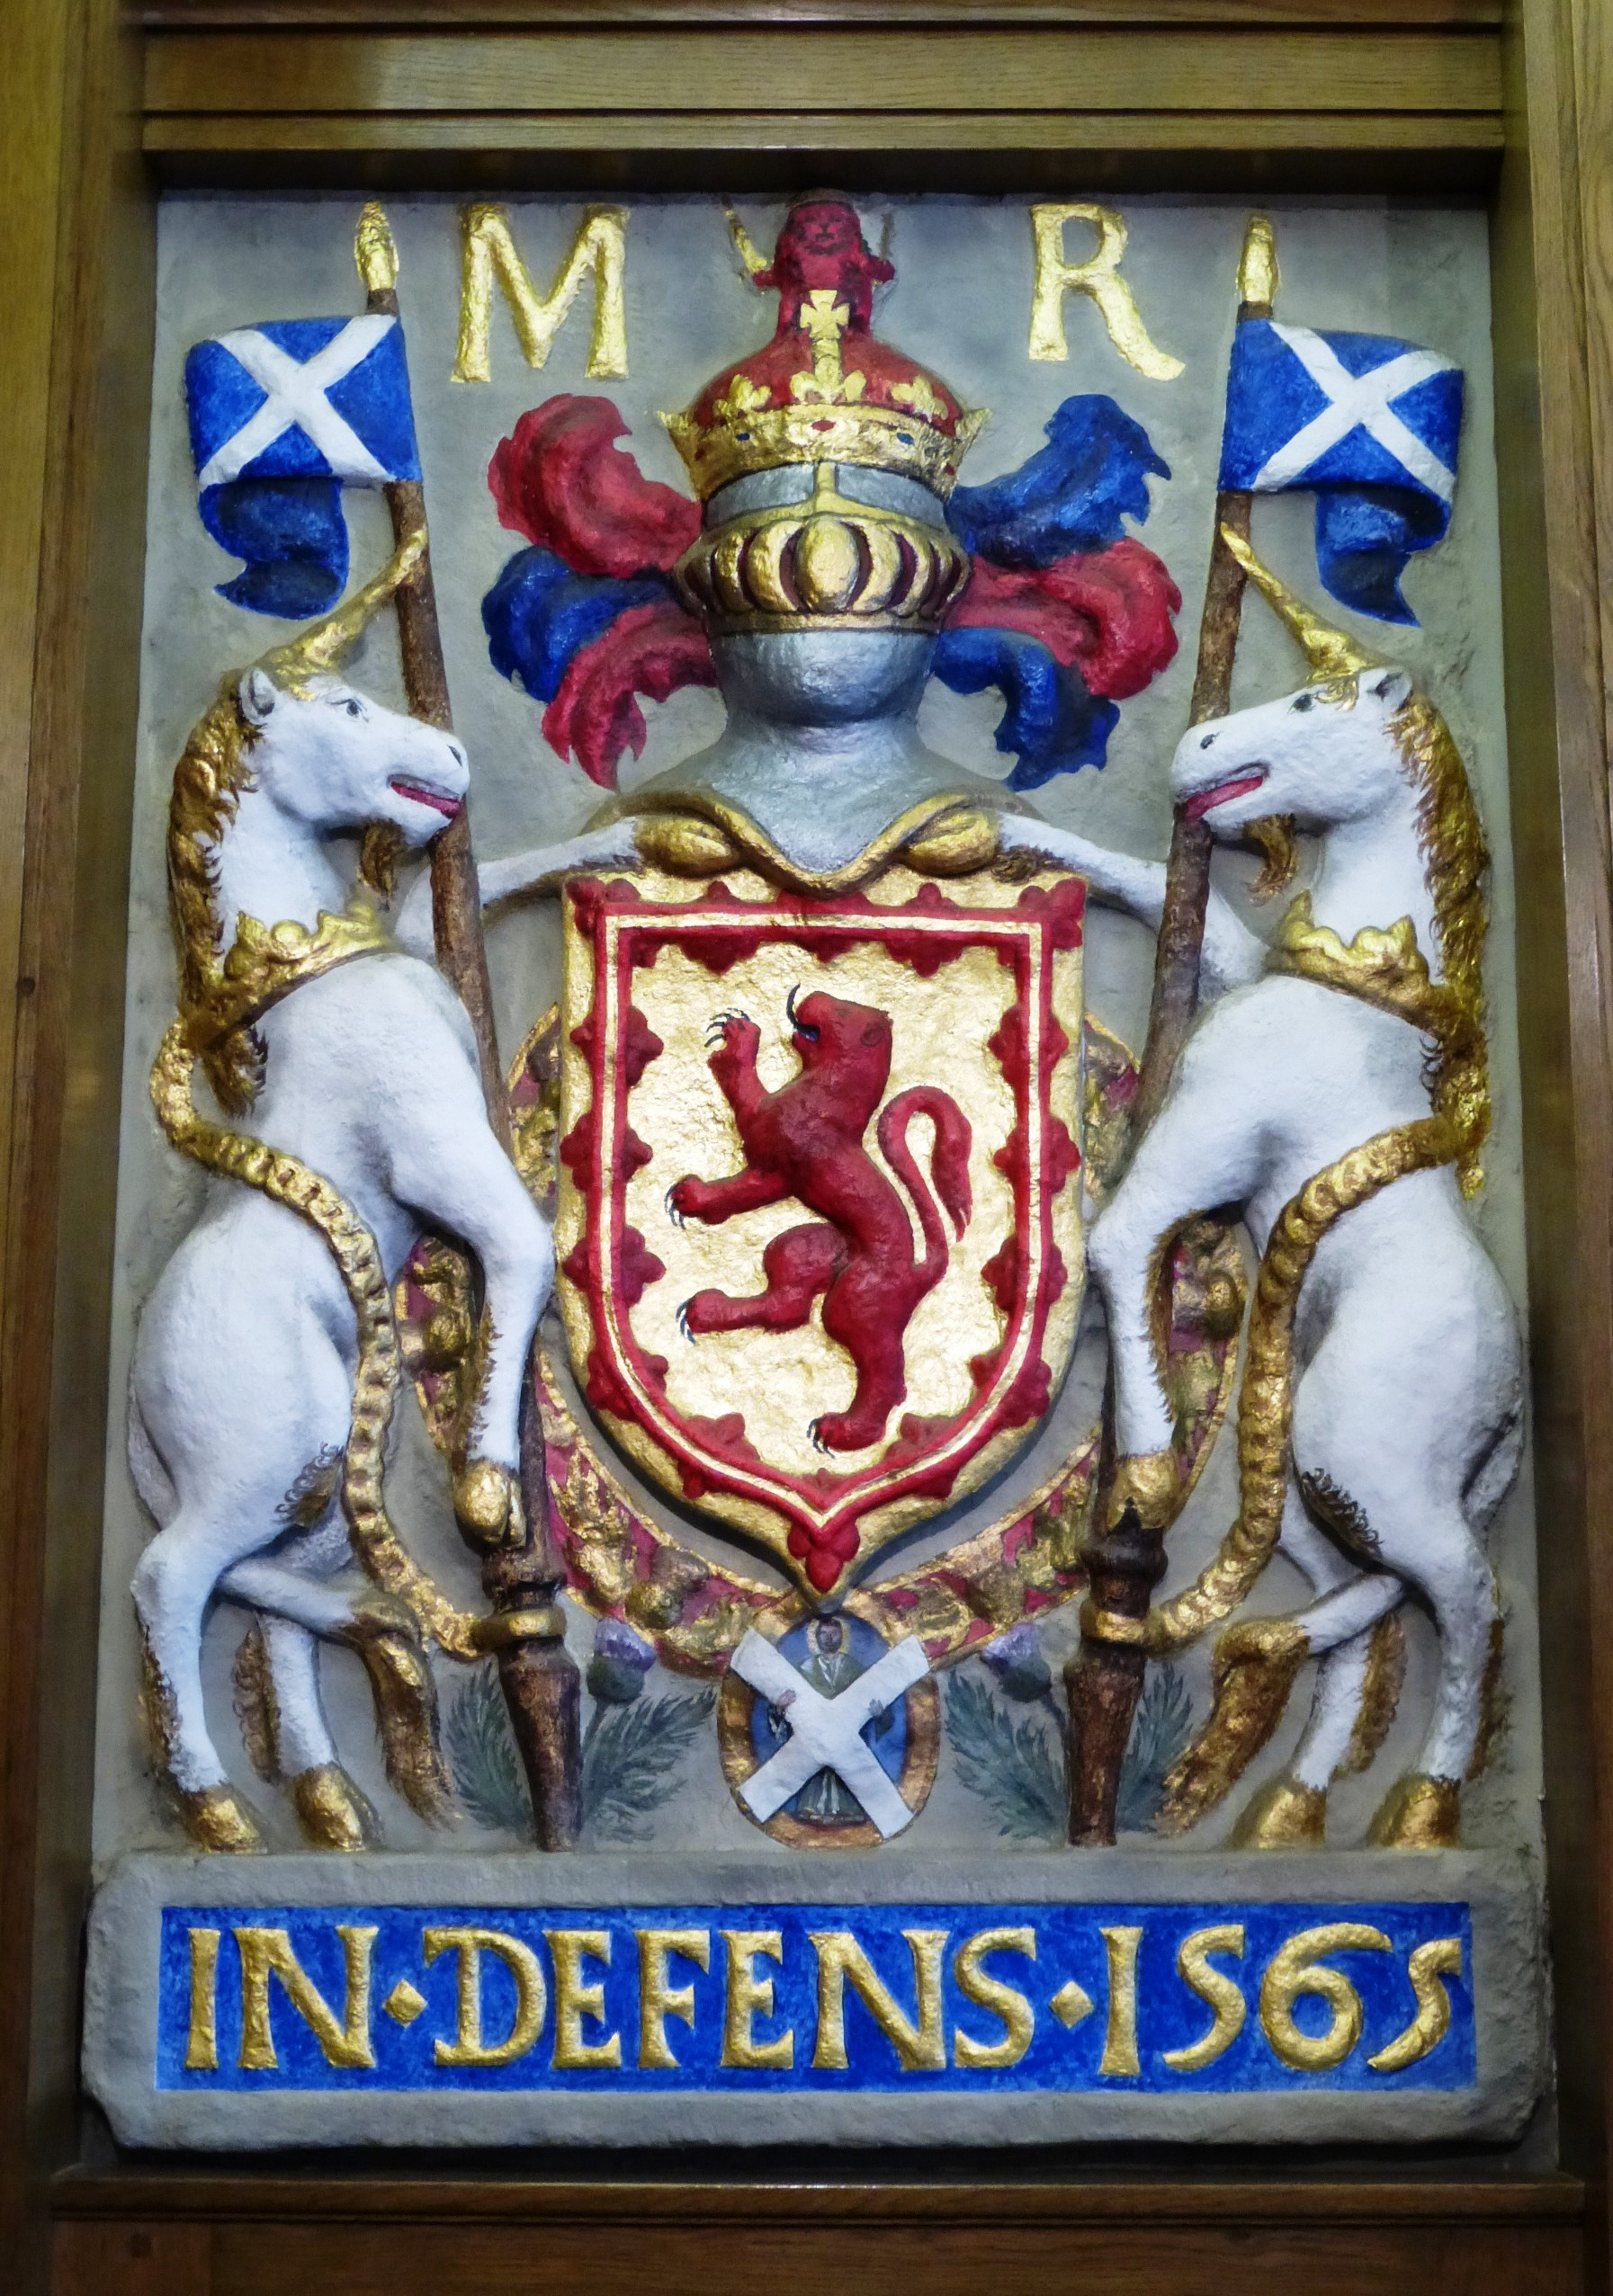 An image of Mary, Queen of Scots' coat of arms, featuring two unicorns.